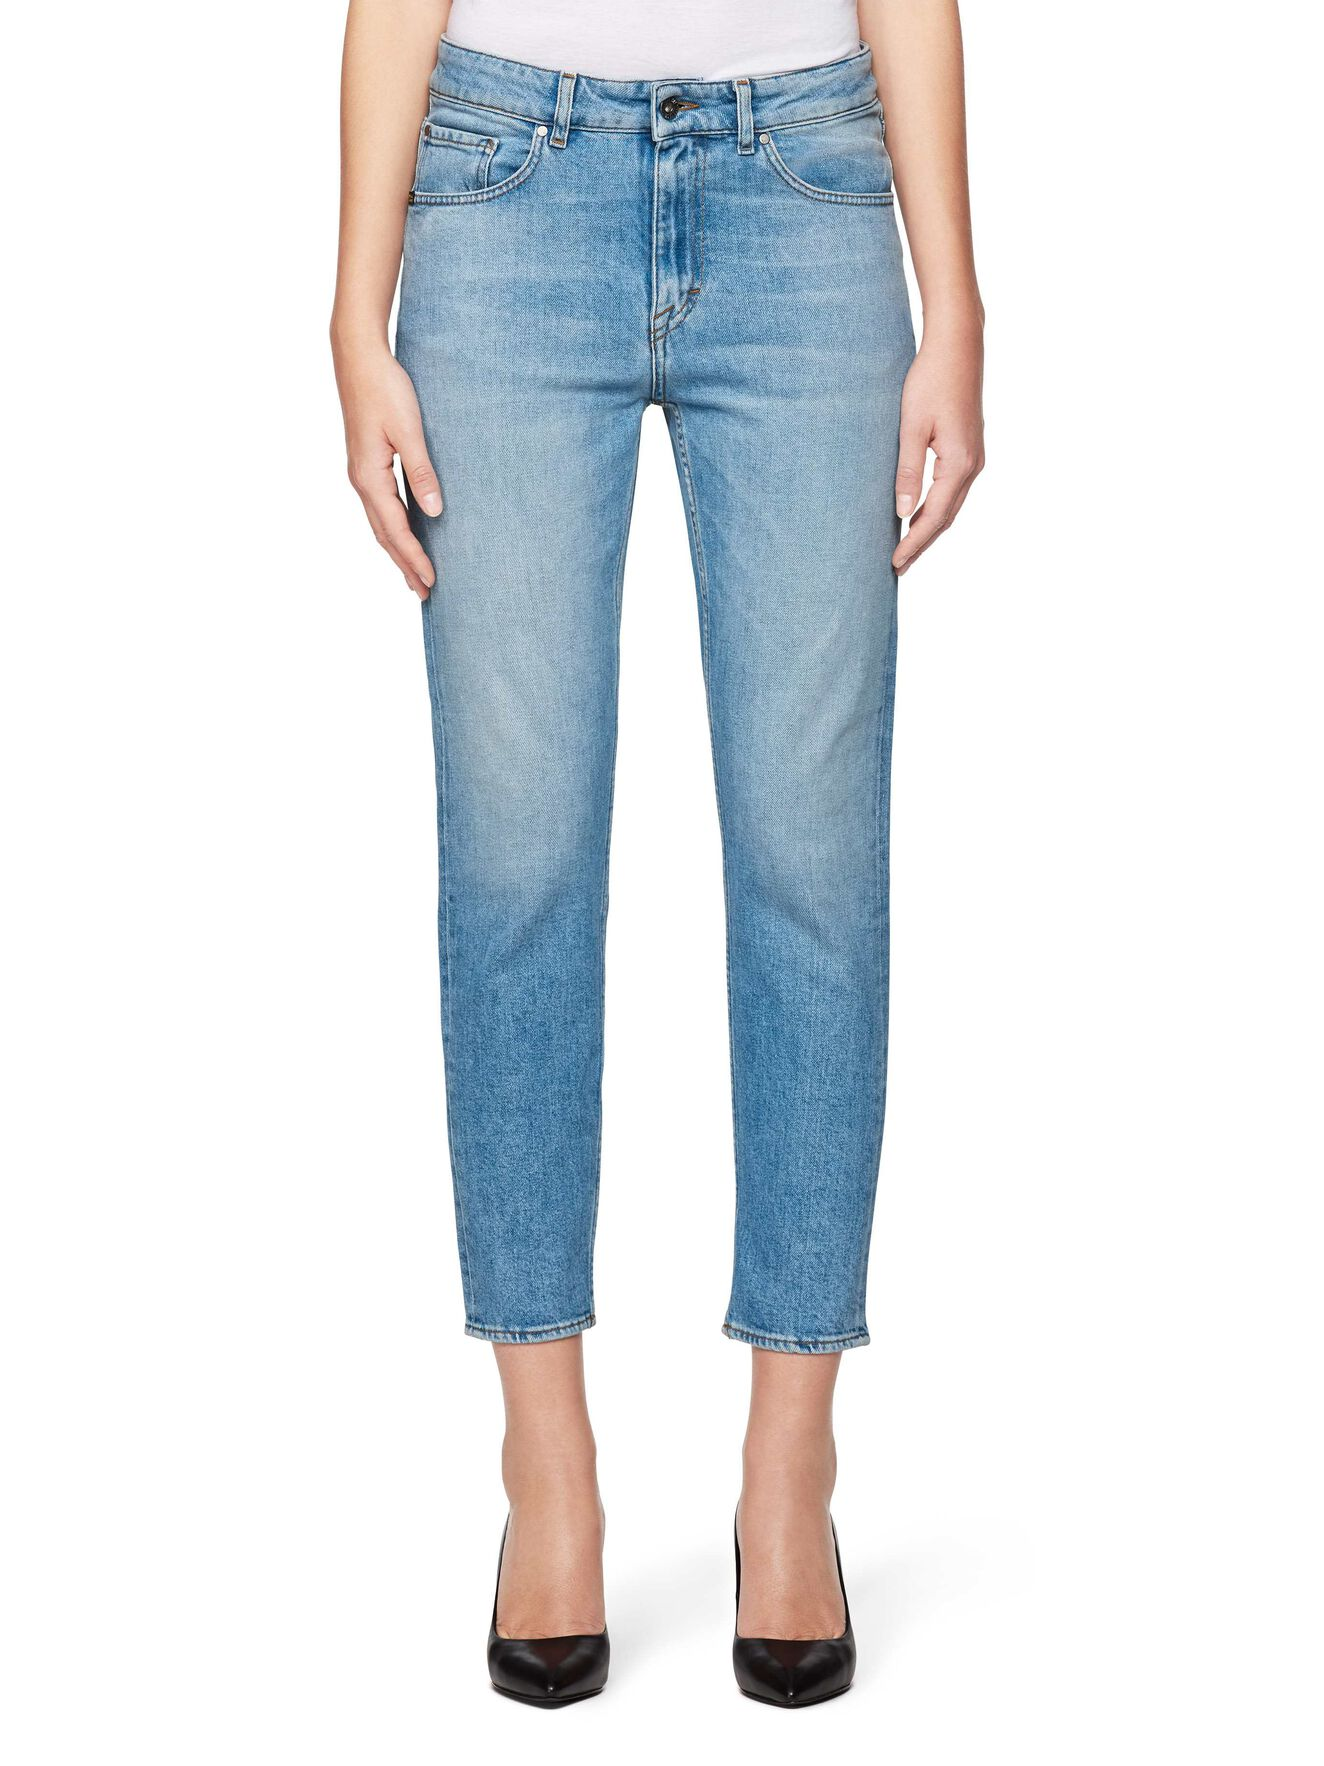 Lea Jeans in Light blue from Tiger of Sweden